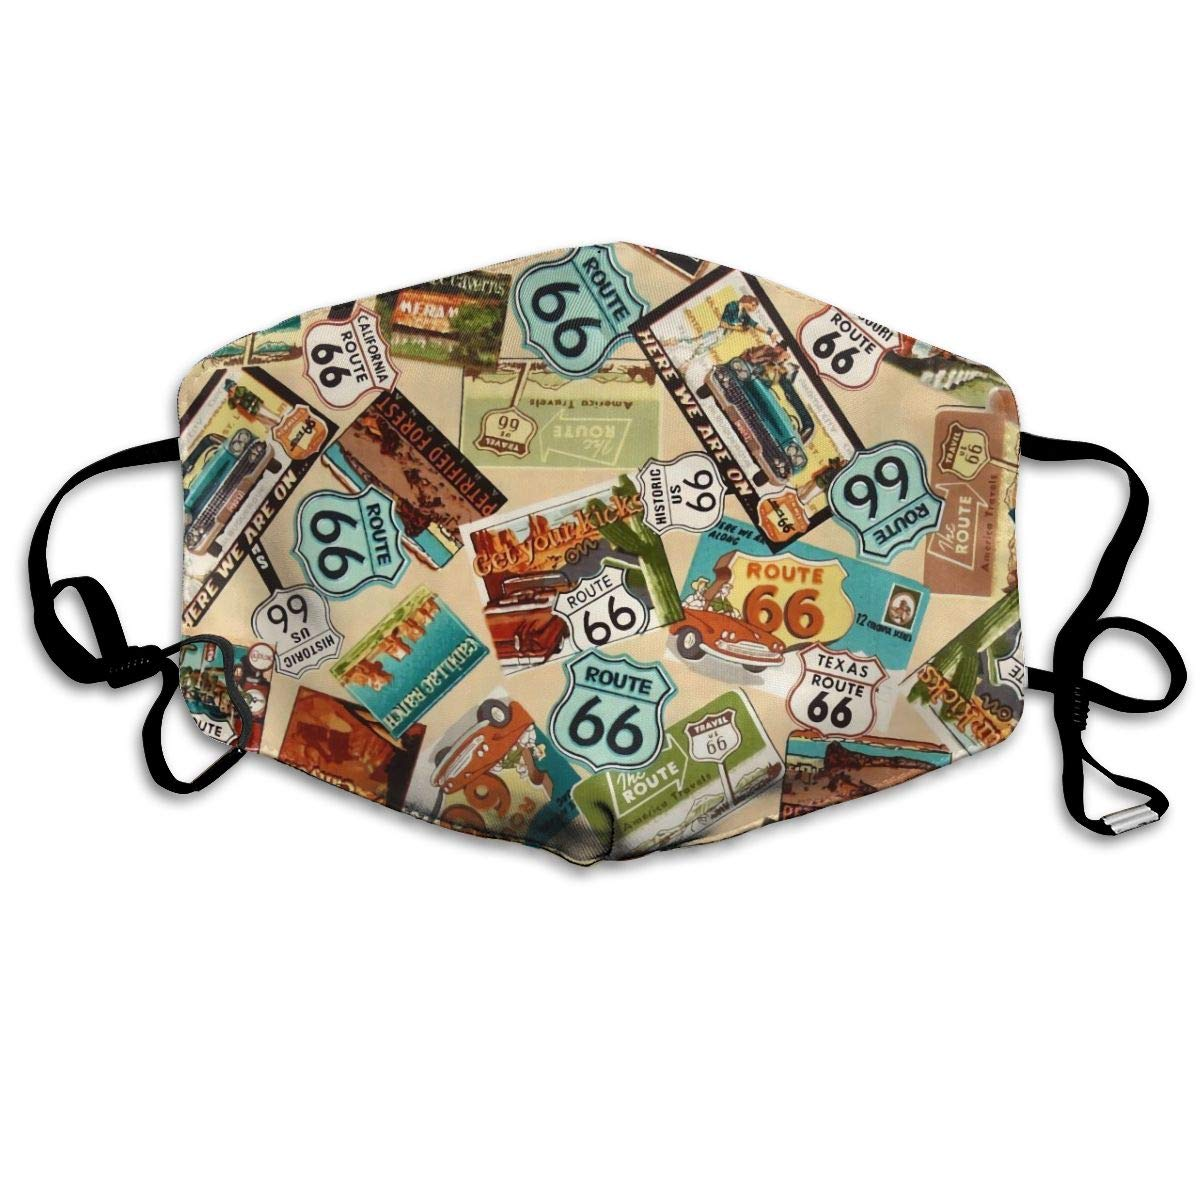 NiYoung Unisex Breathable American Map California Route 66 Vintage Mouth Mask, Adjustable Earloop   Anti Dust Pollution Face